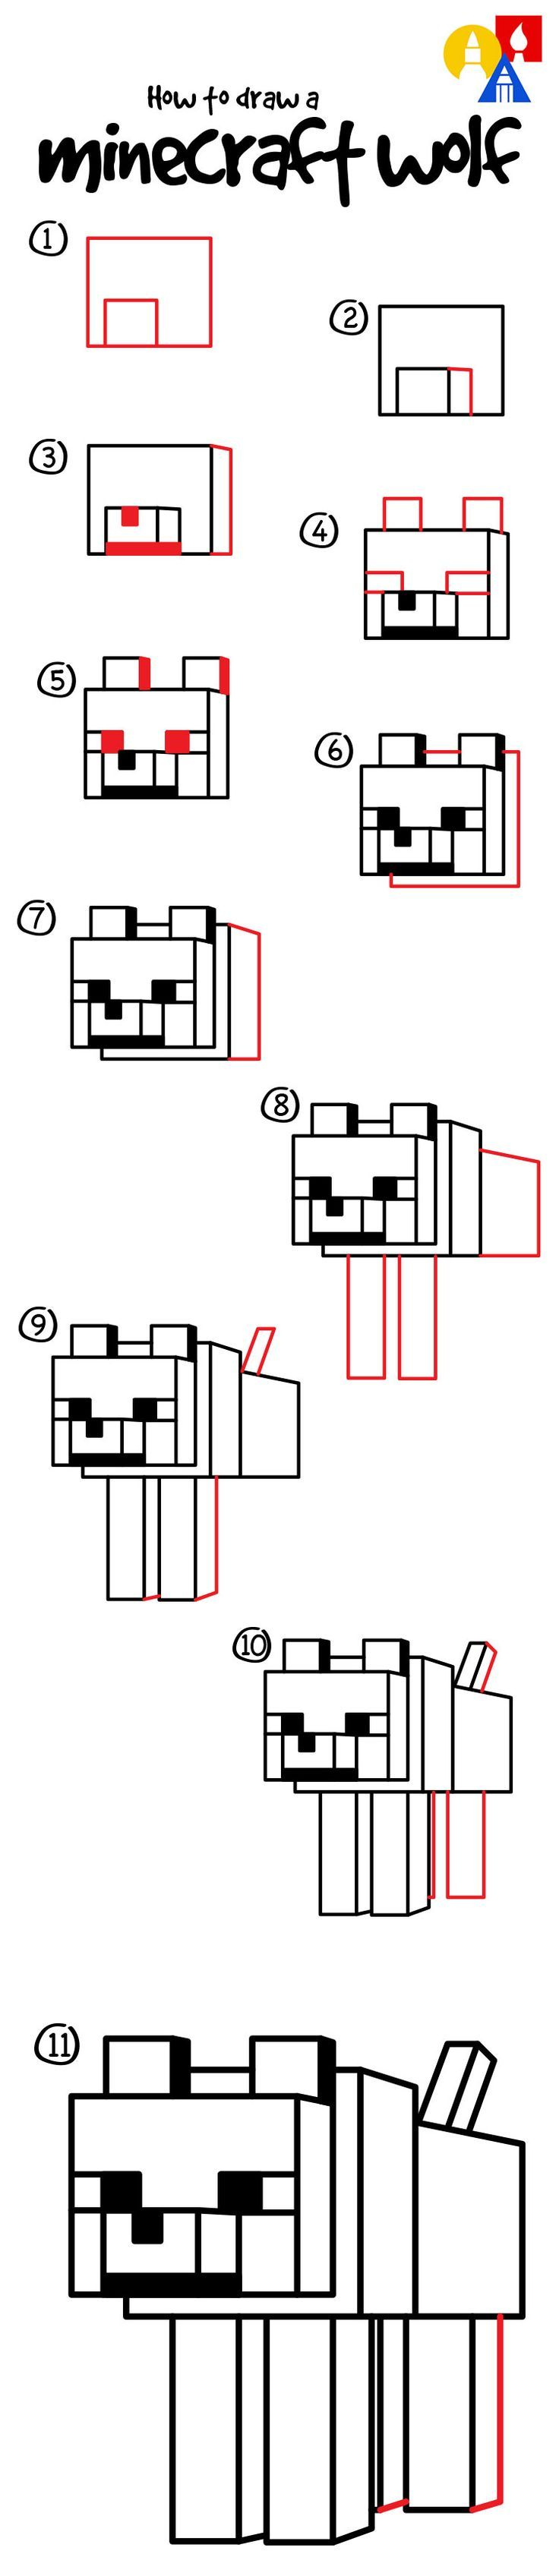 Learn how to draw a Minecraft wolf!